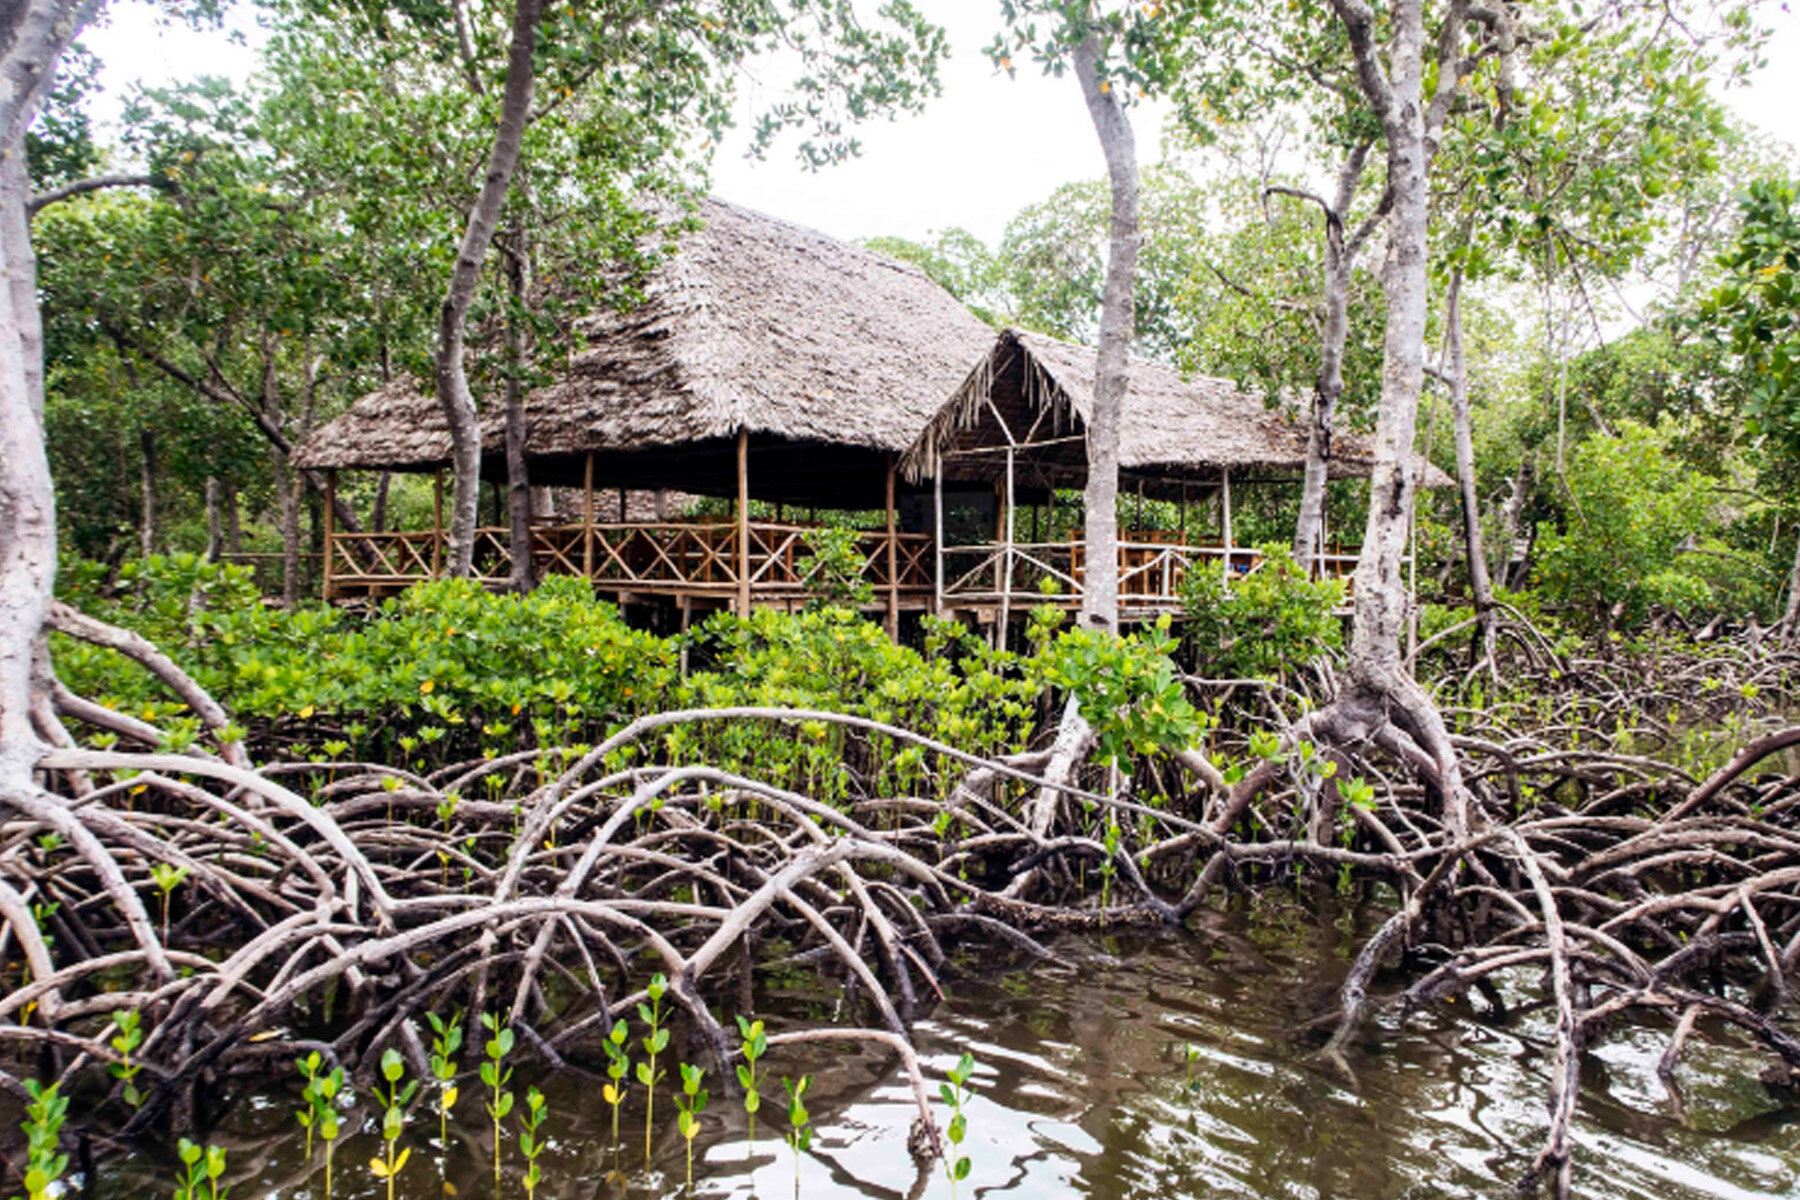 Crab Shack, majestically built amongst the mangroves..